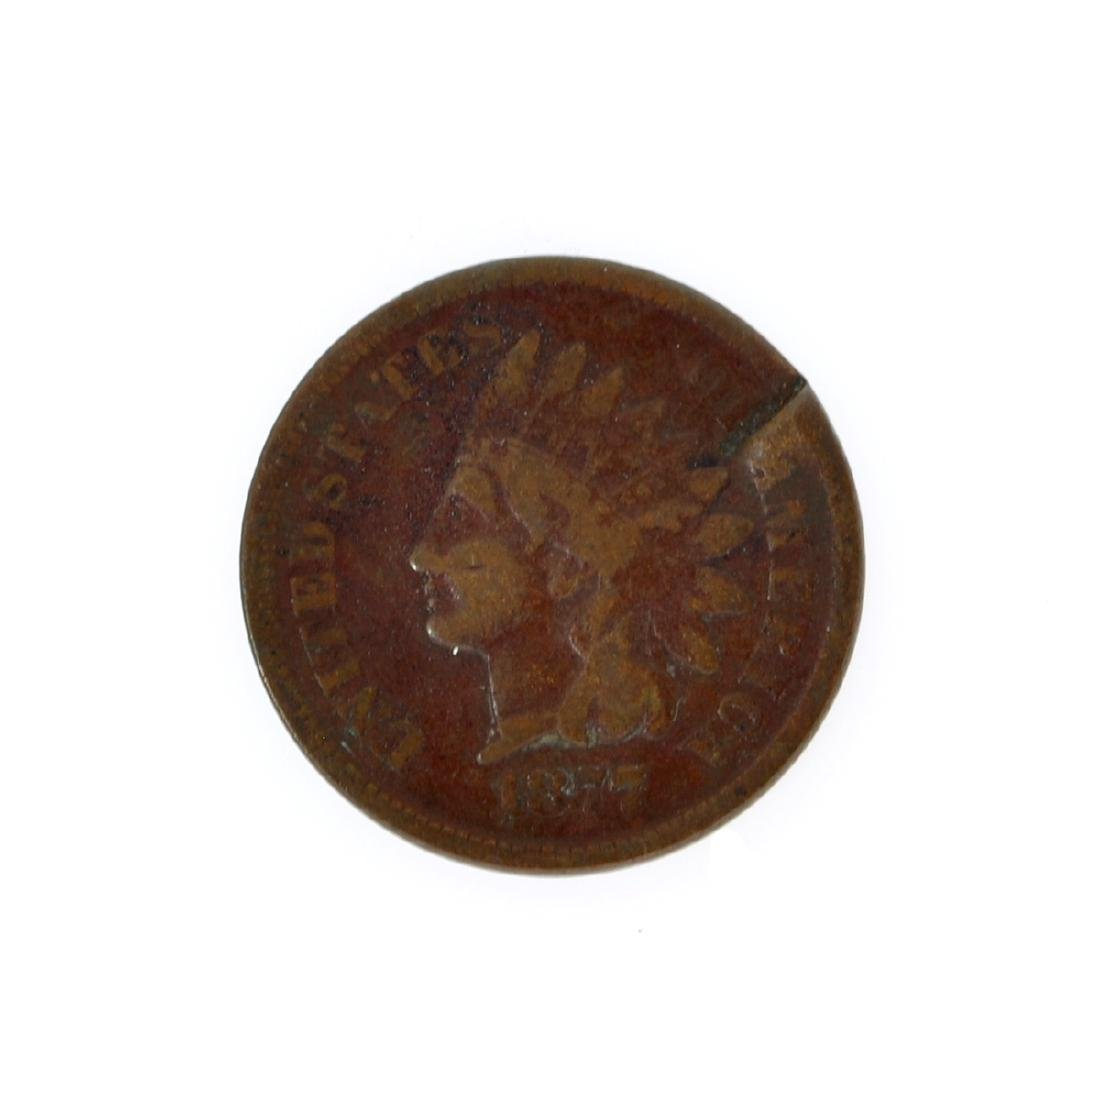 1877 Lincoln One Cent Key Date Coin